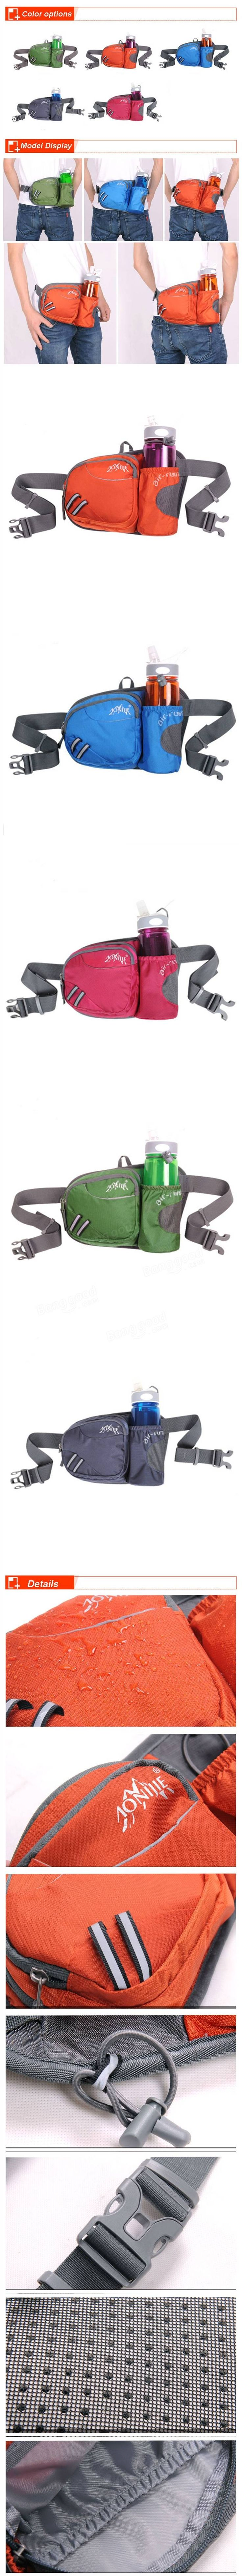 top 25 best wholesale water bottles ideas on pinterest cheap aonijie outdoor camping hiking waist bag sports travel water bottle bag holder